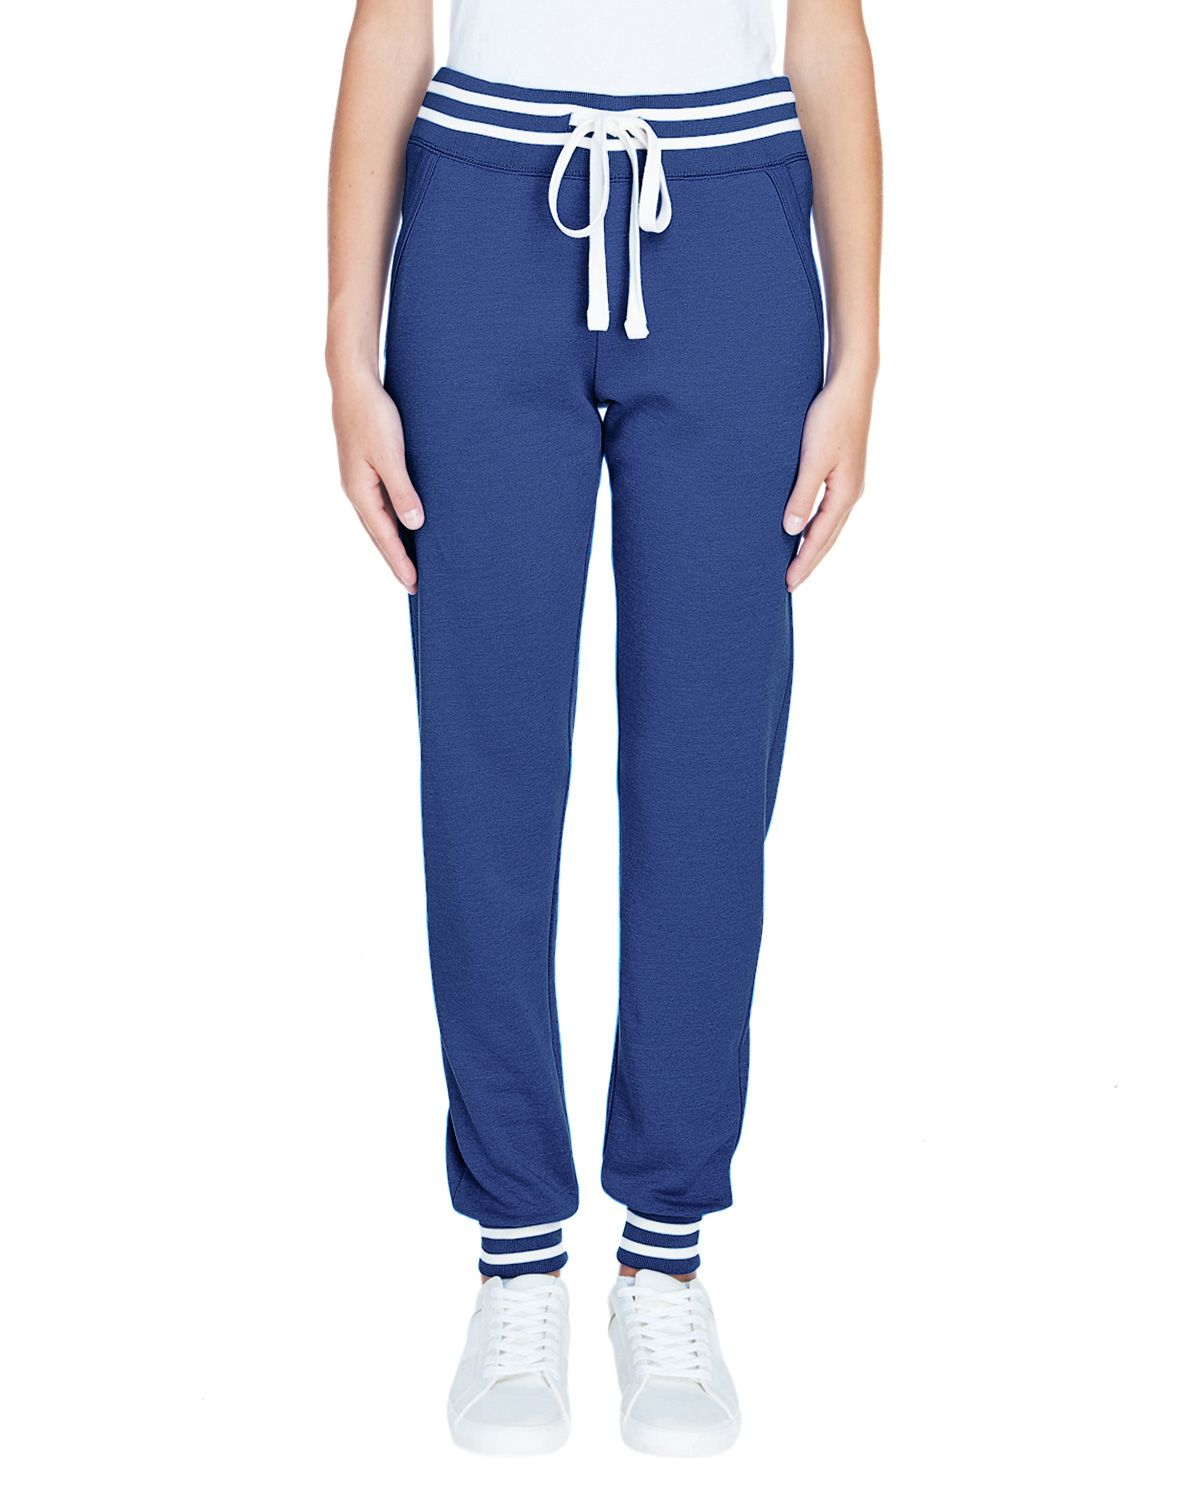 J America JA8654 Women's Relay Jogger - Navy - S from J America